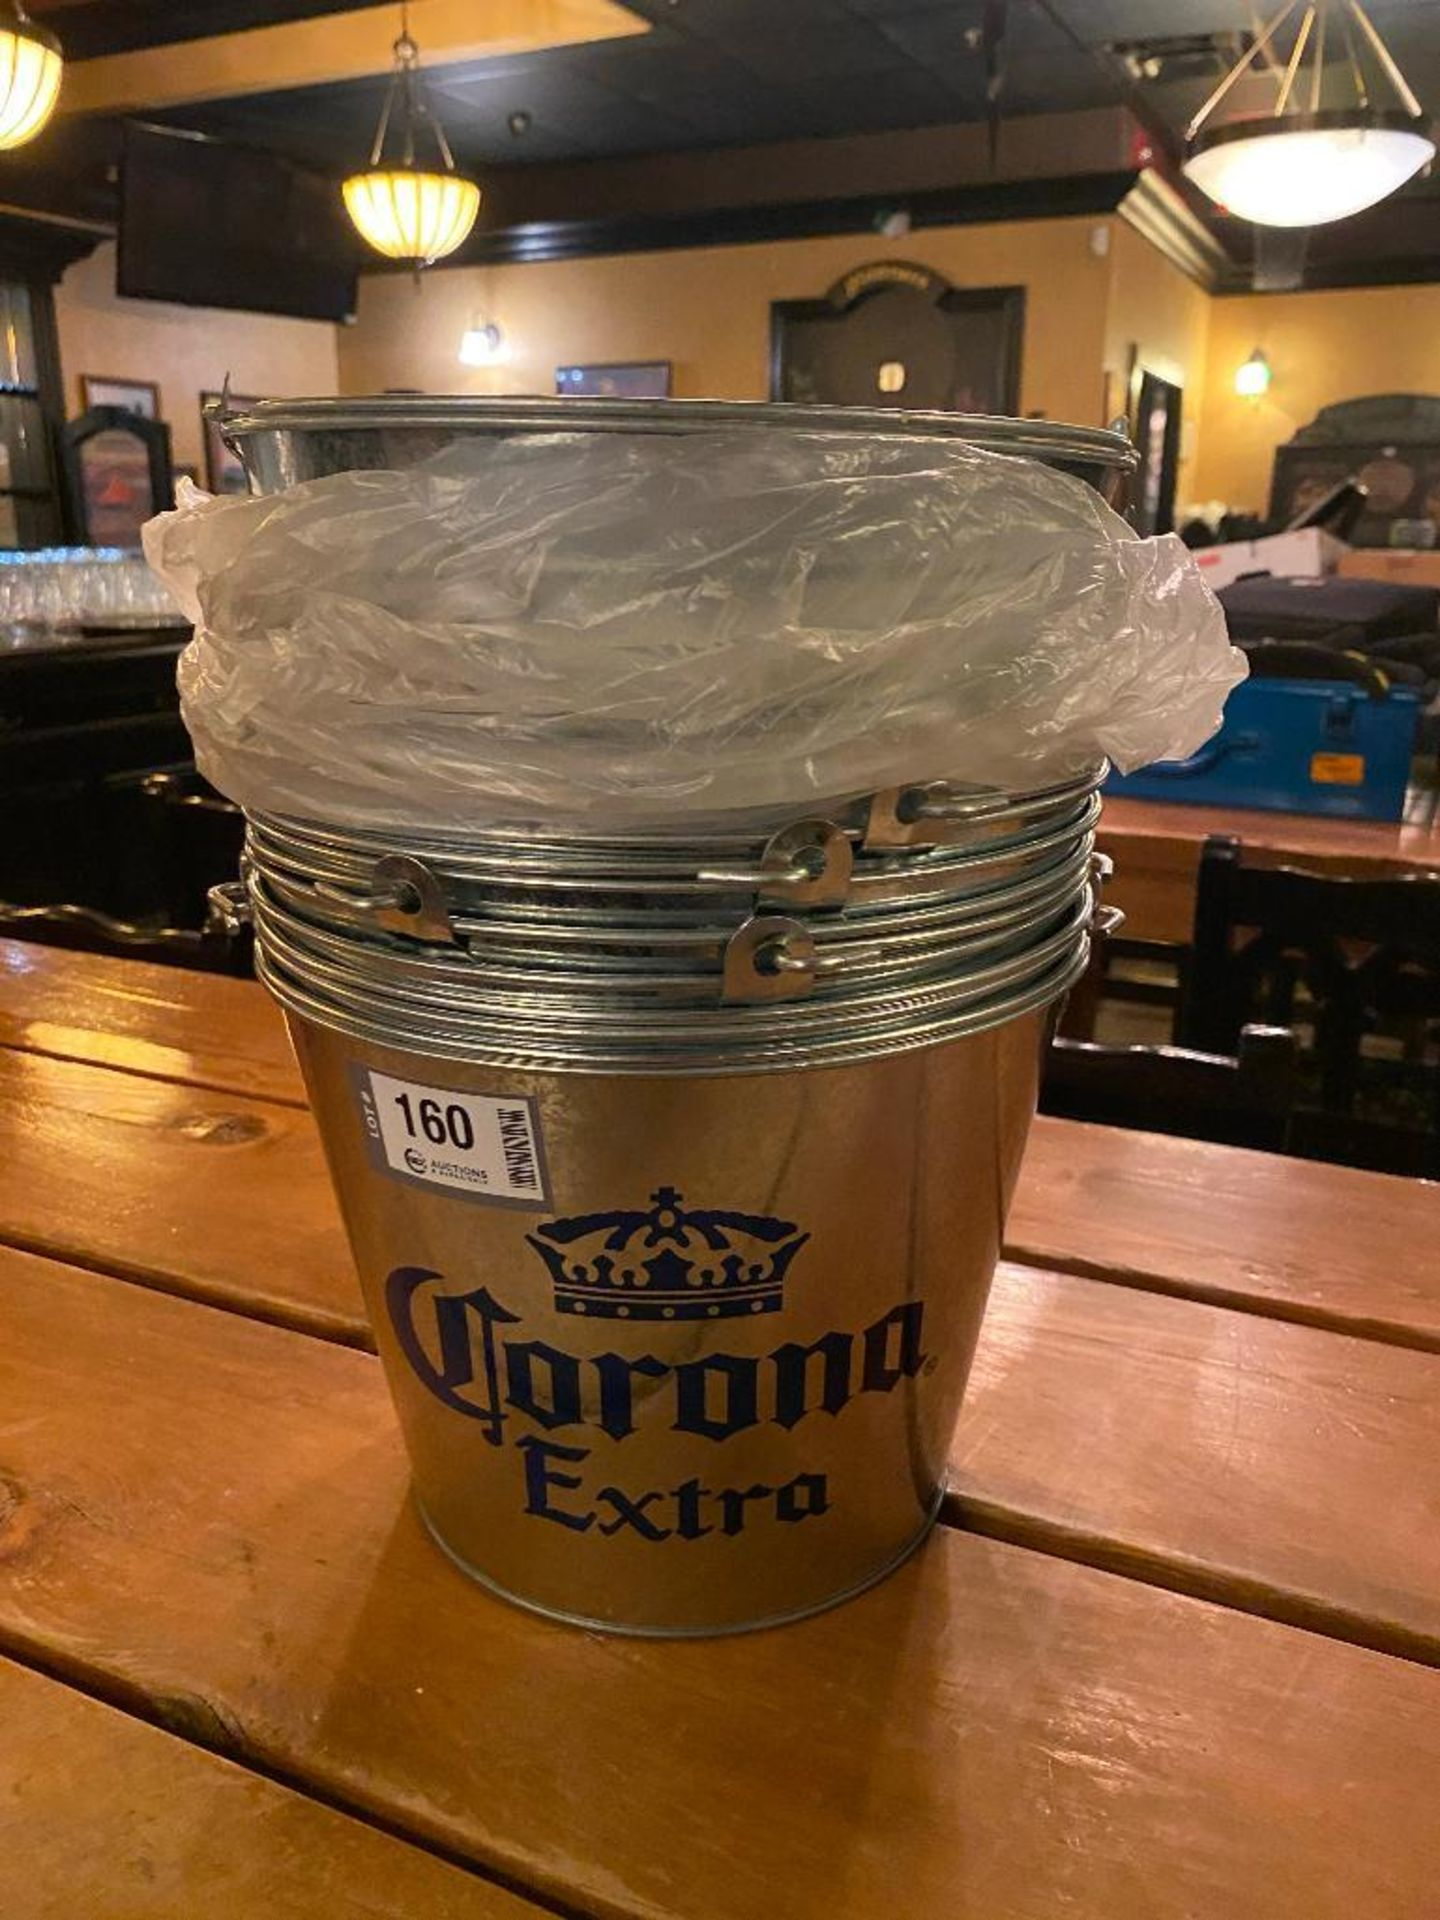 LOT OF CORONA EXTRA BRANDED METAL PAILS - Image 2 of 2